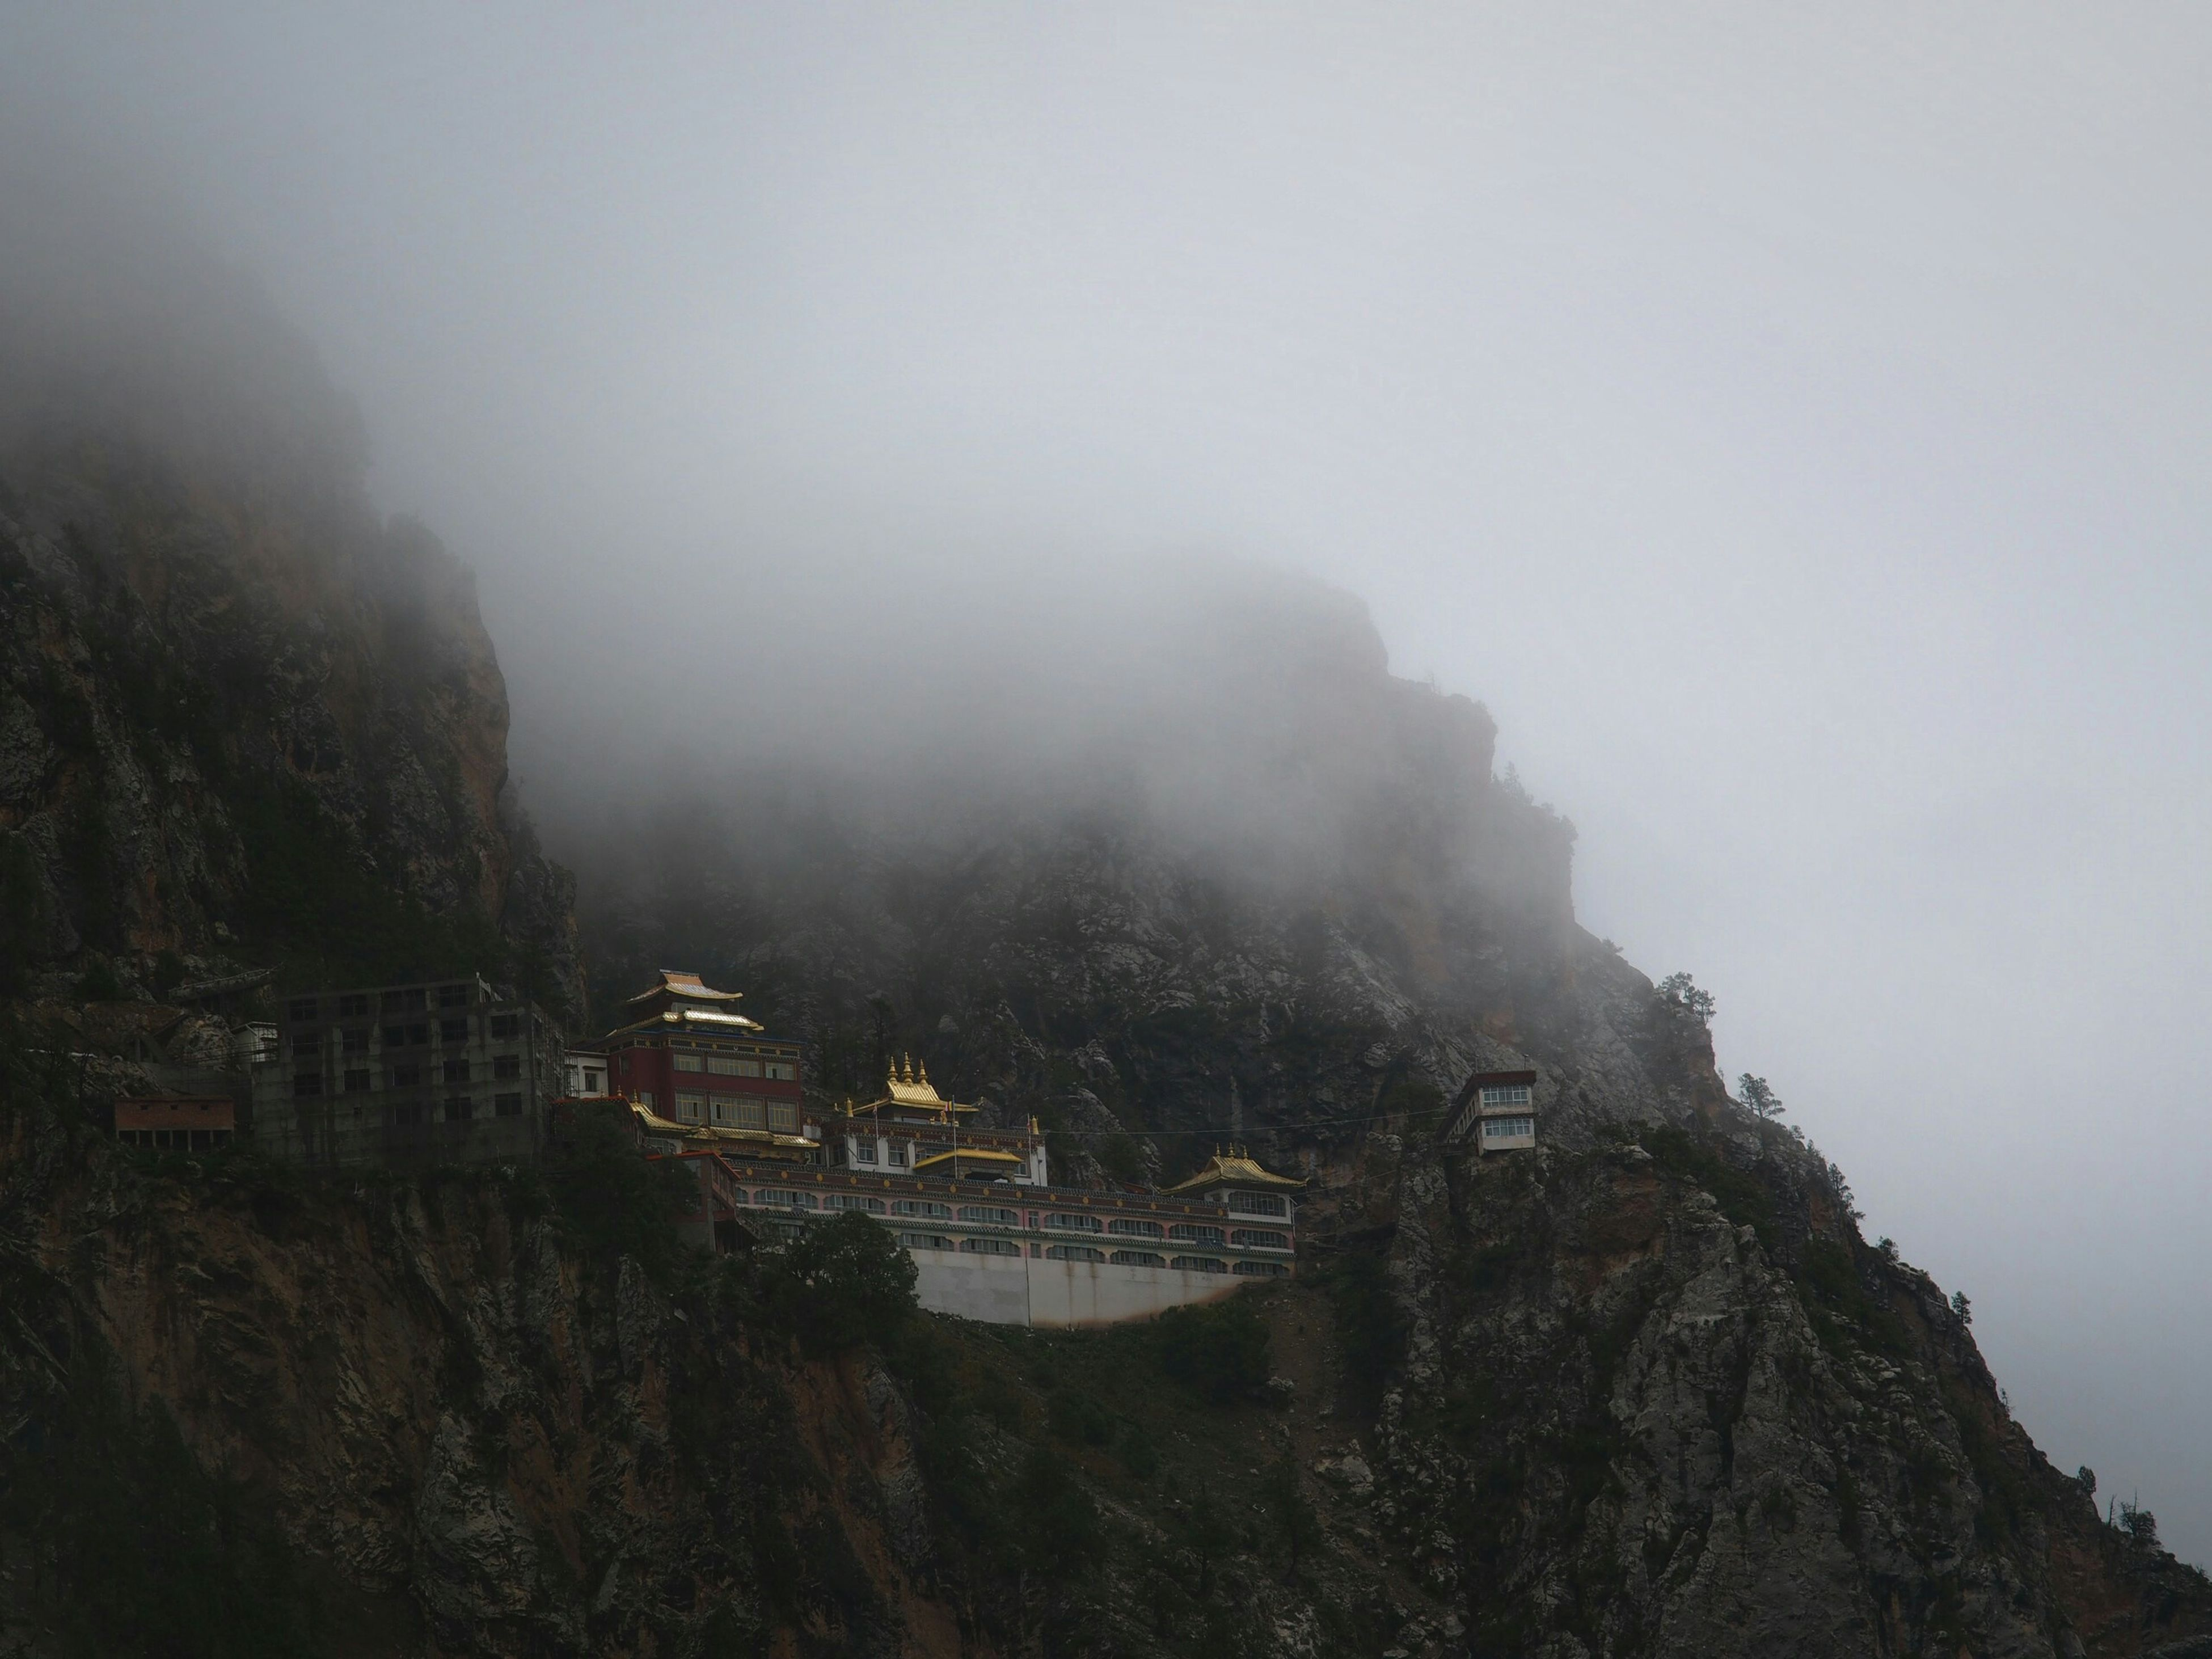 fog, foggy, weather, building exterior, built structure, architecture, mountain, house, high angle view, winter, landscape, sky, nature, residential structure, scenics, beauty in nature, copy space, tranquility, cold temperature, overcast